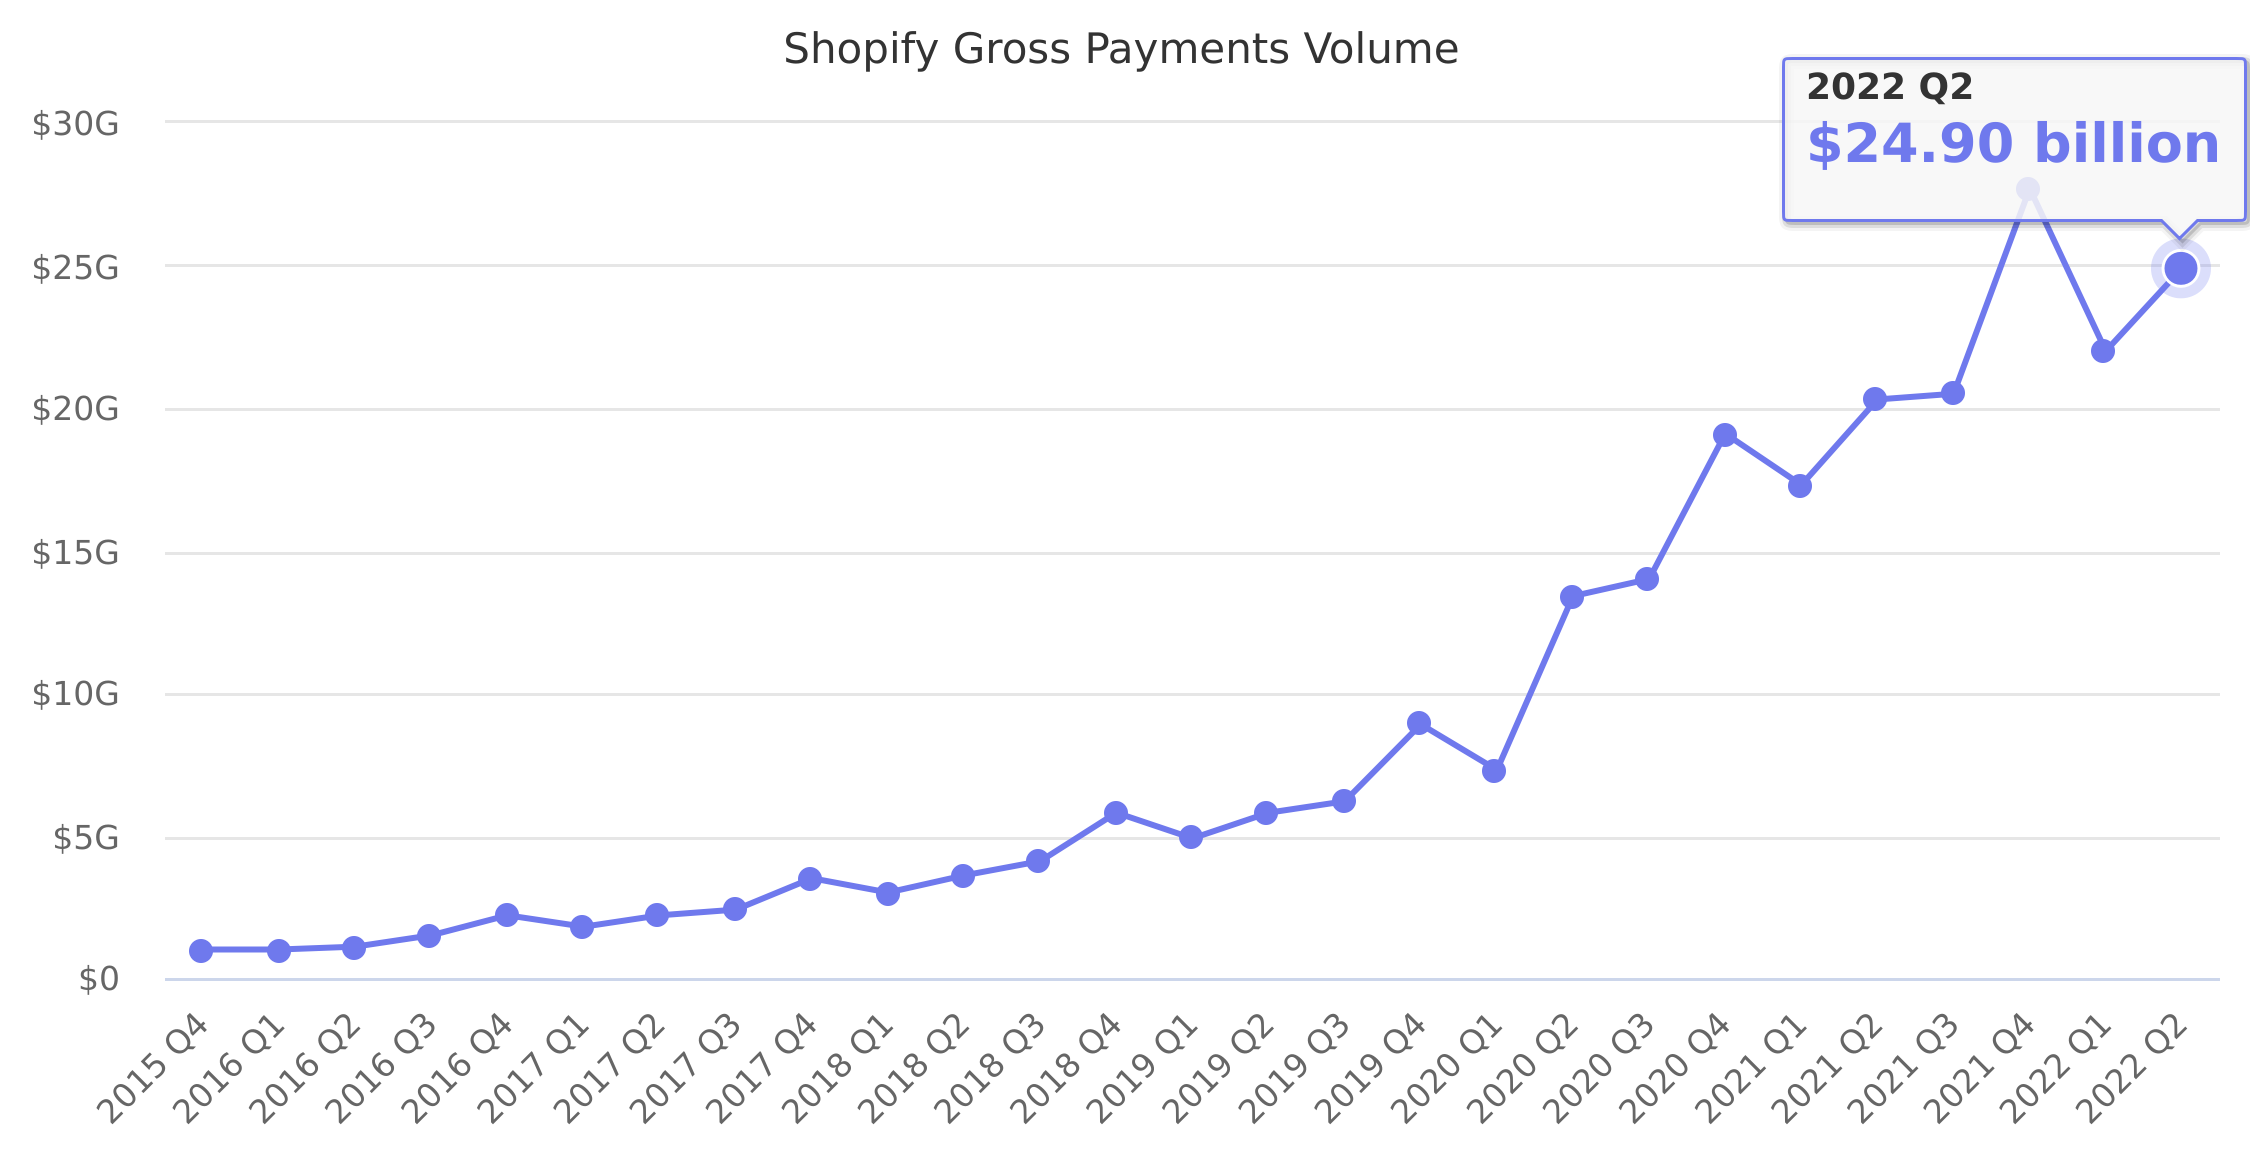 Shopify Gross Payments Volume